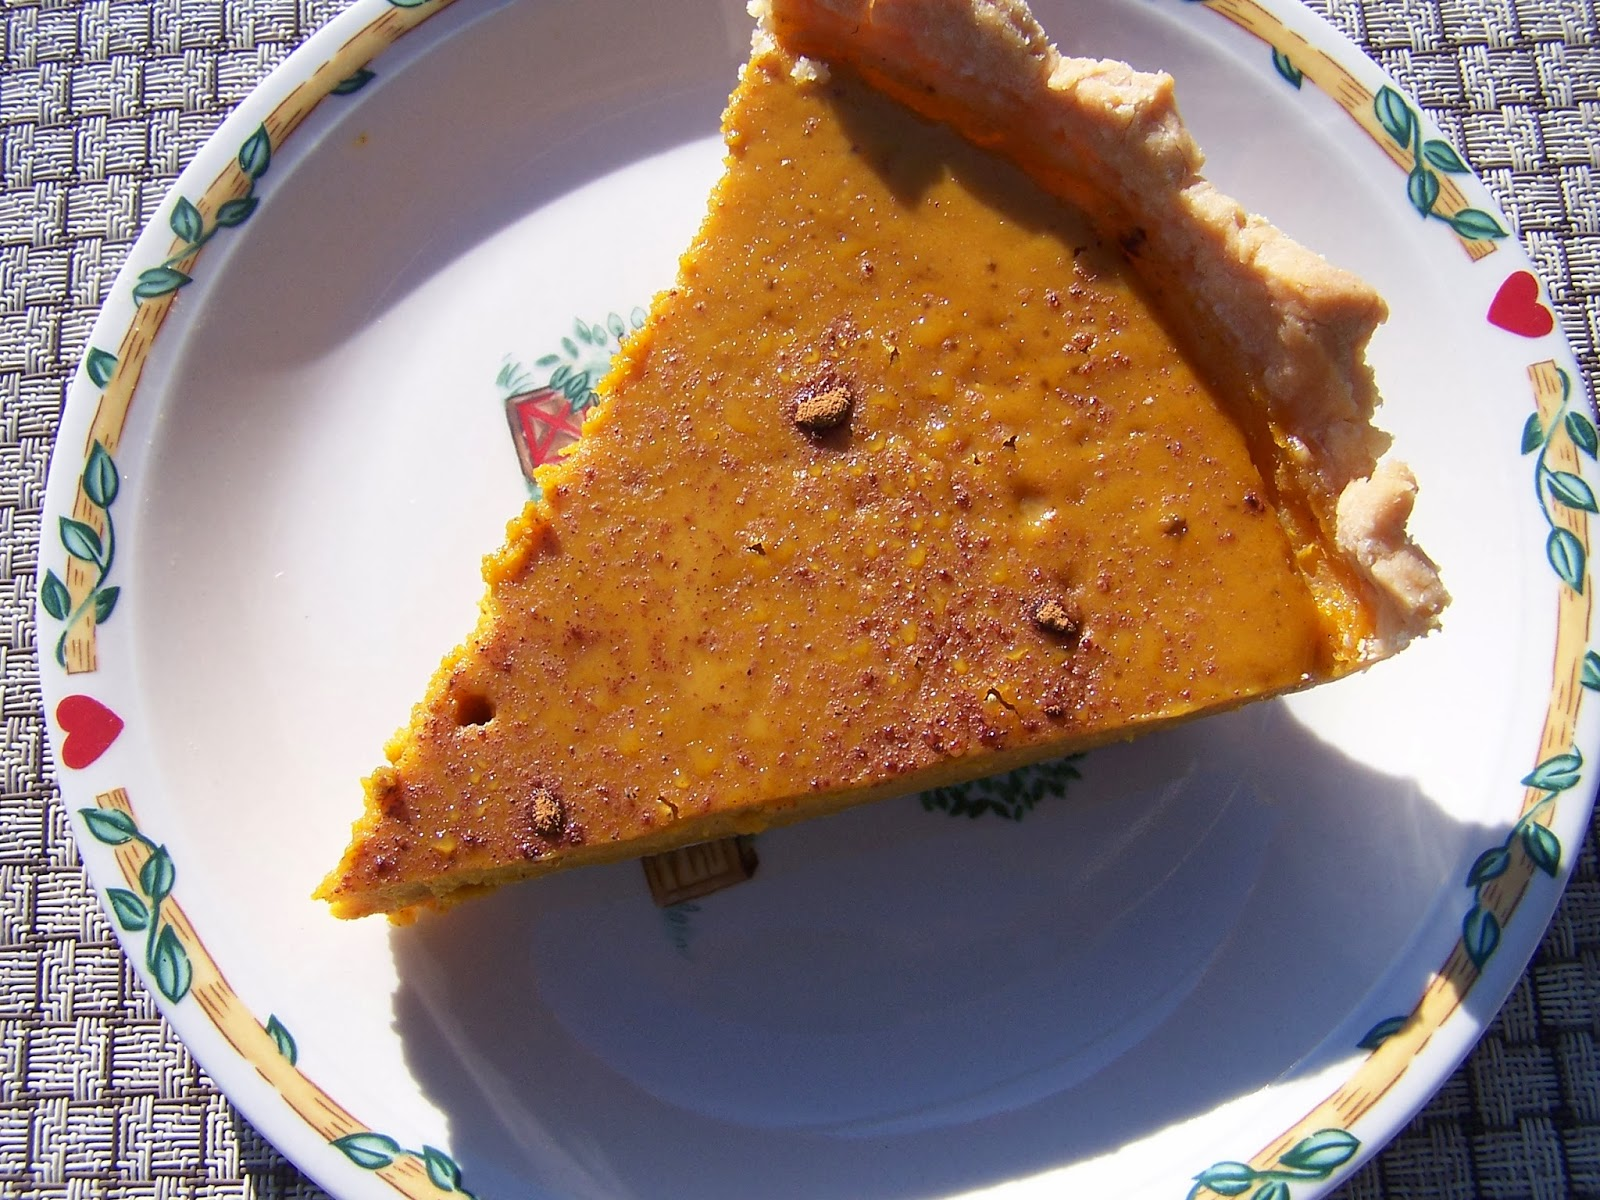 Organic Gluten Free Pumpkin Pie made with roasted squash